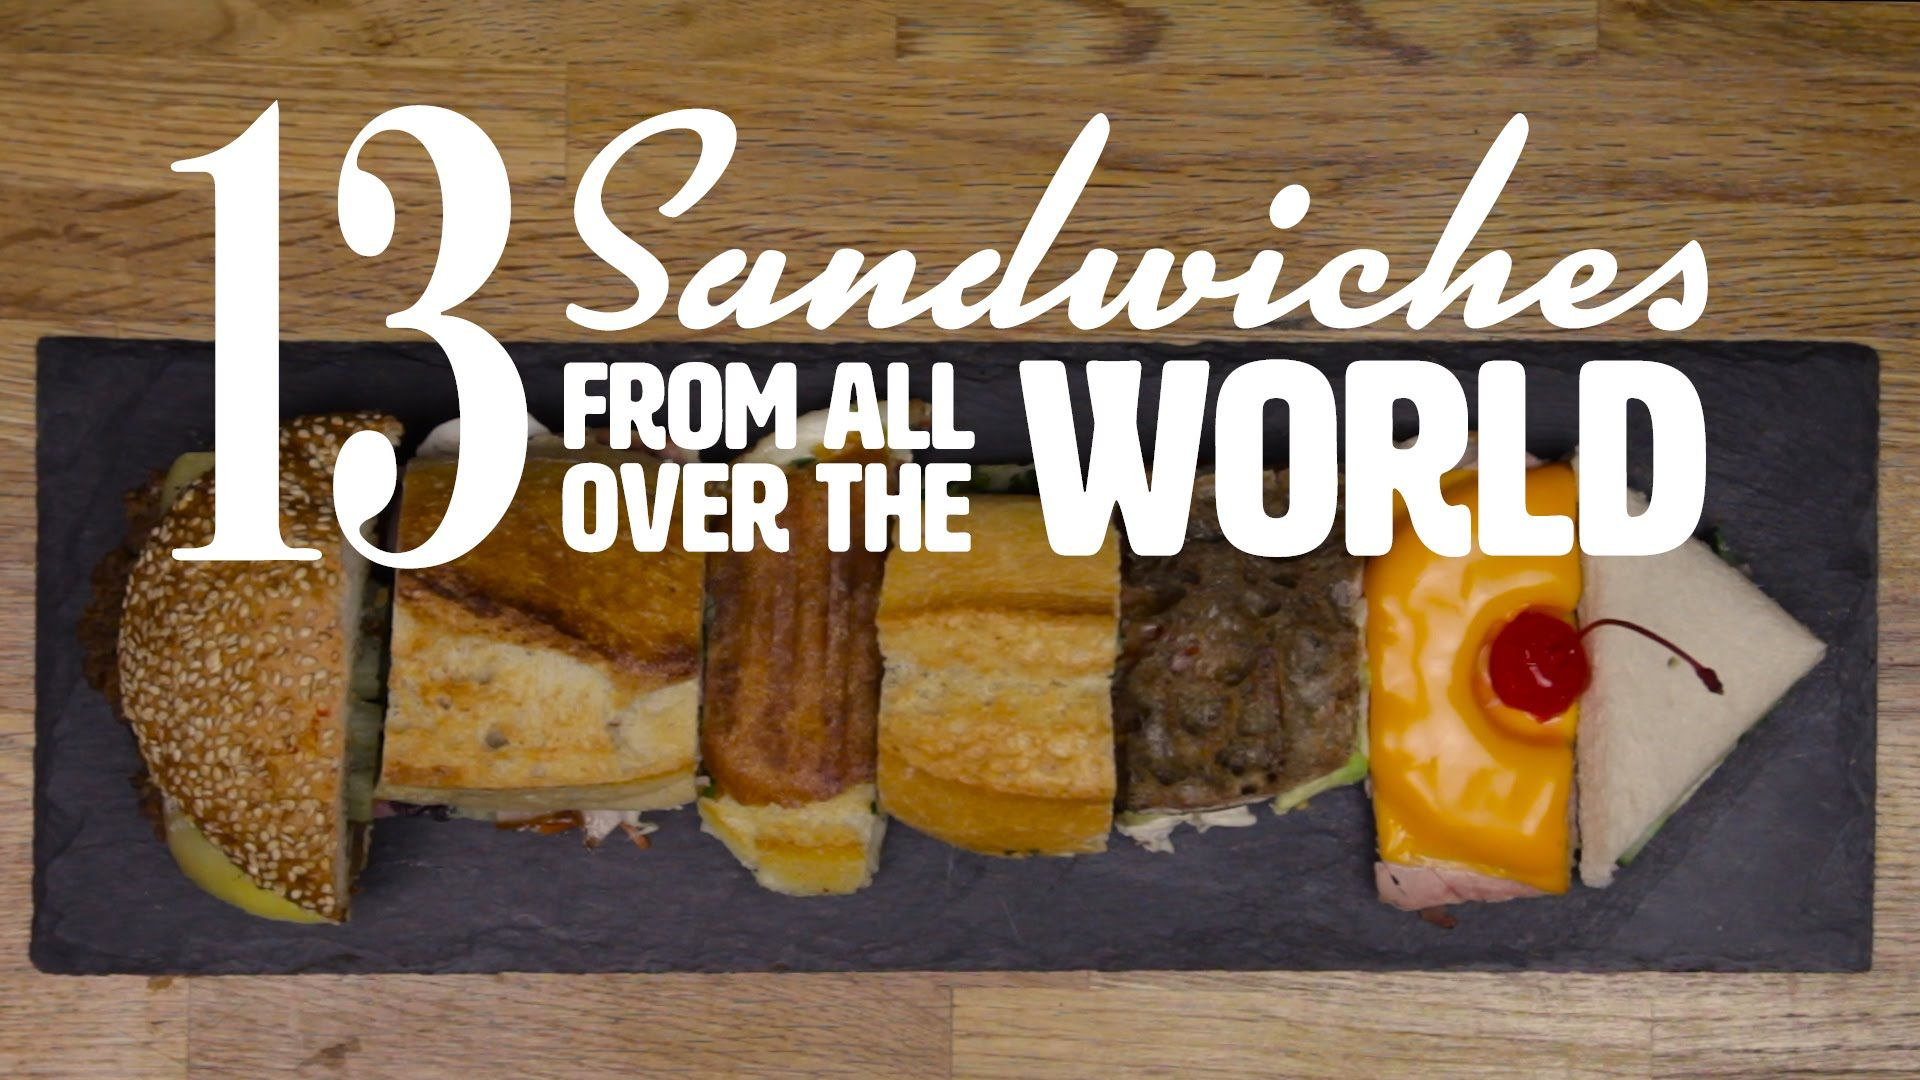 13 Sandwiches from all over the World